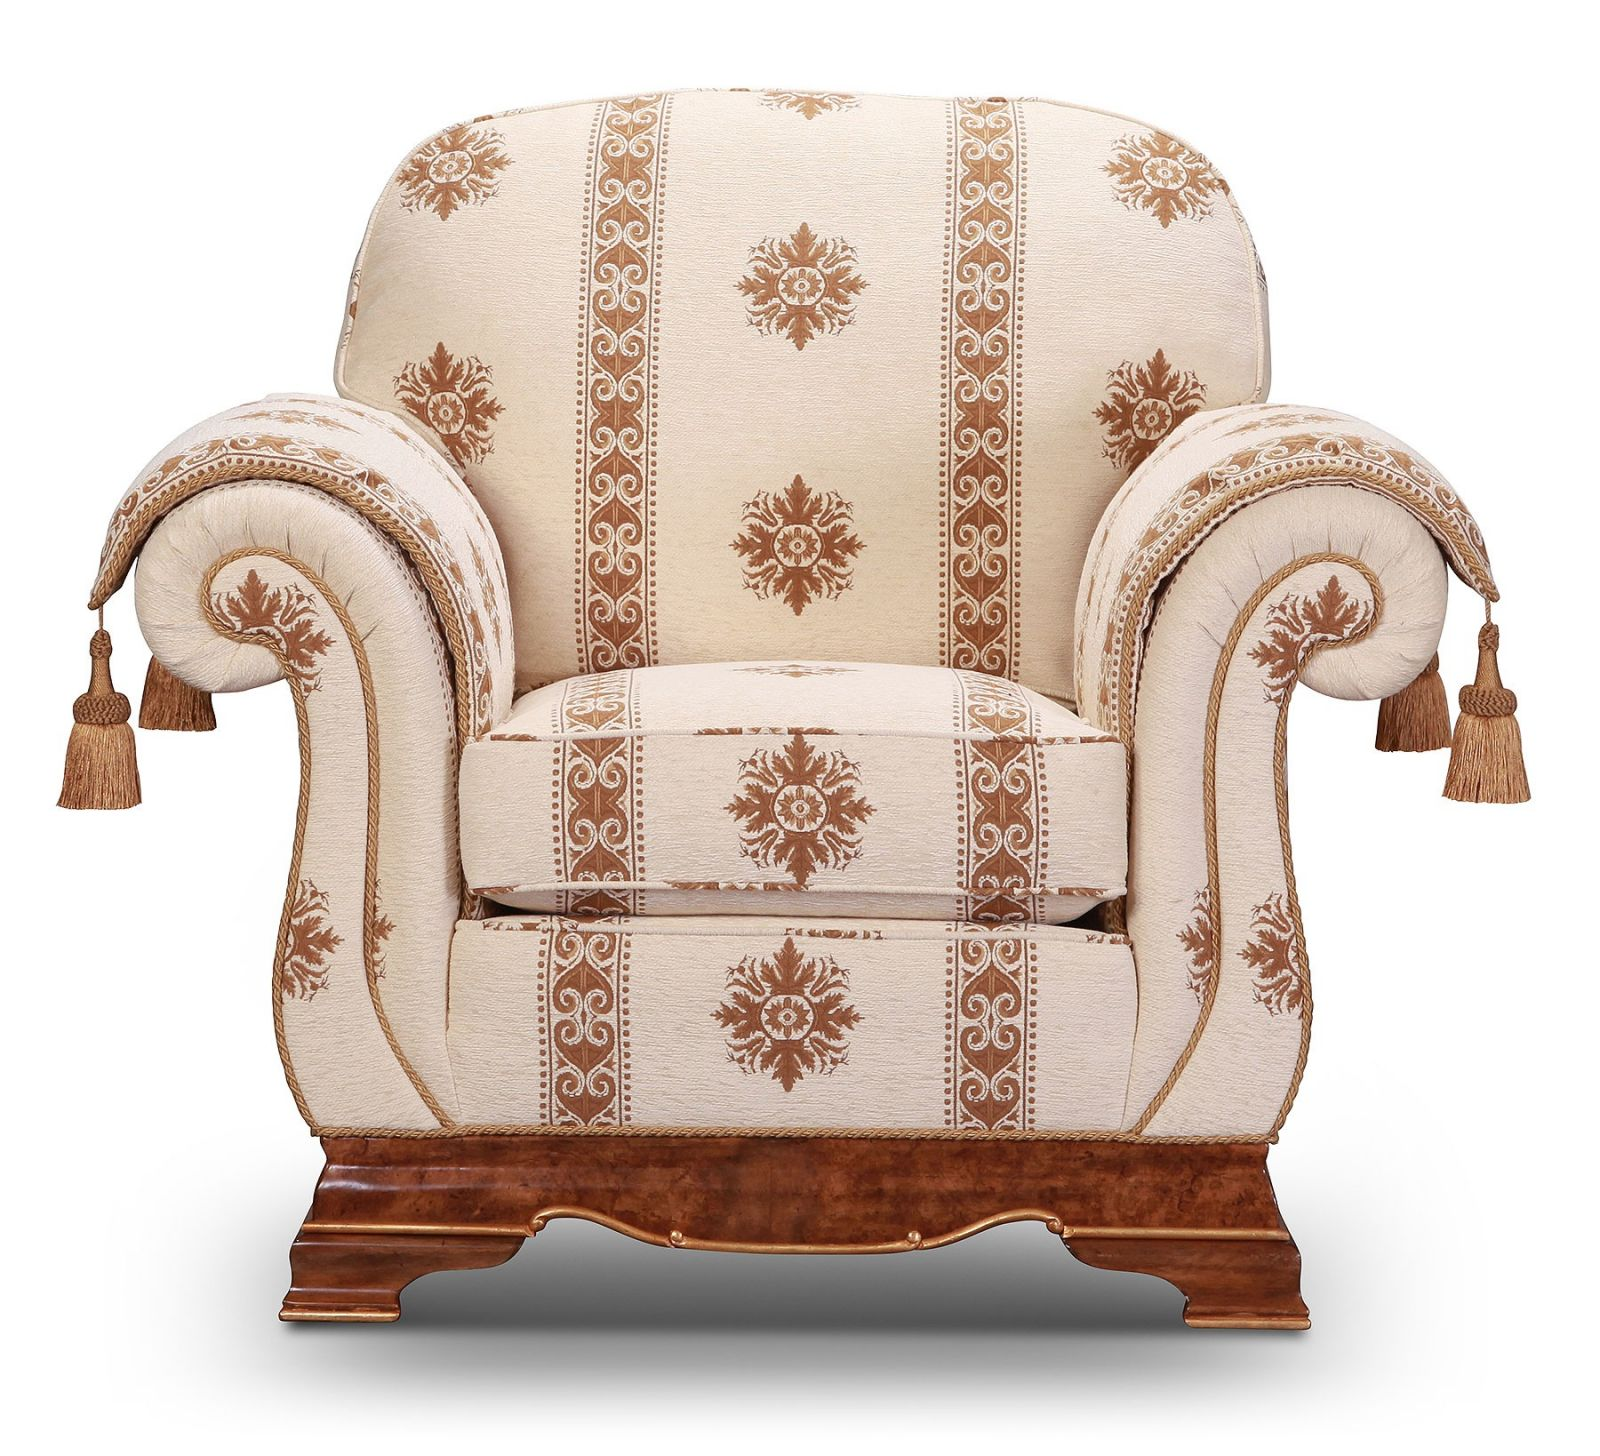 Dorchester sofa and chair in quality cream and brown fabric